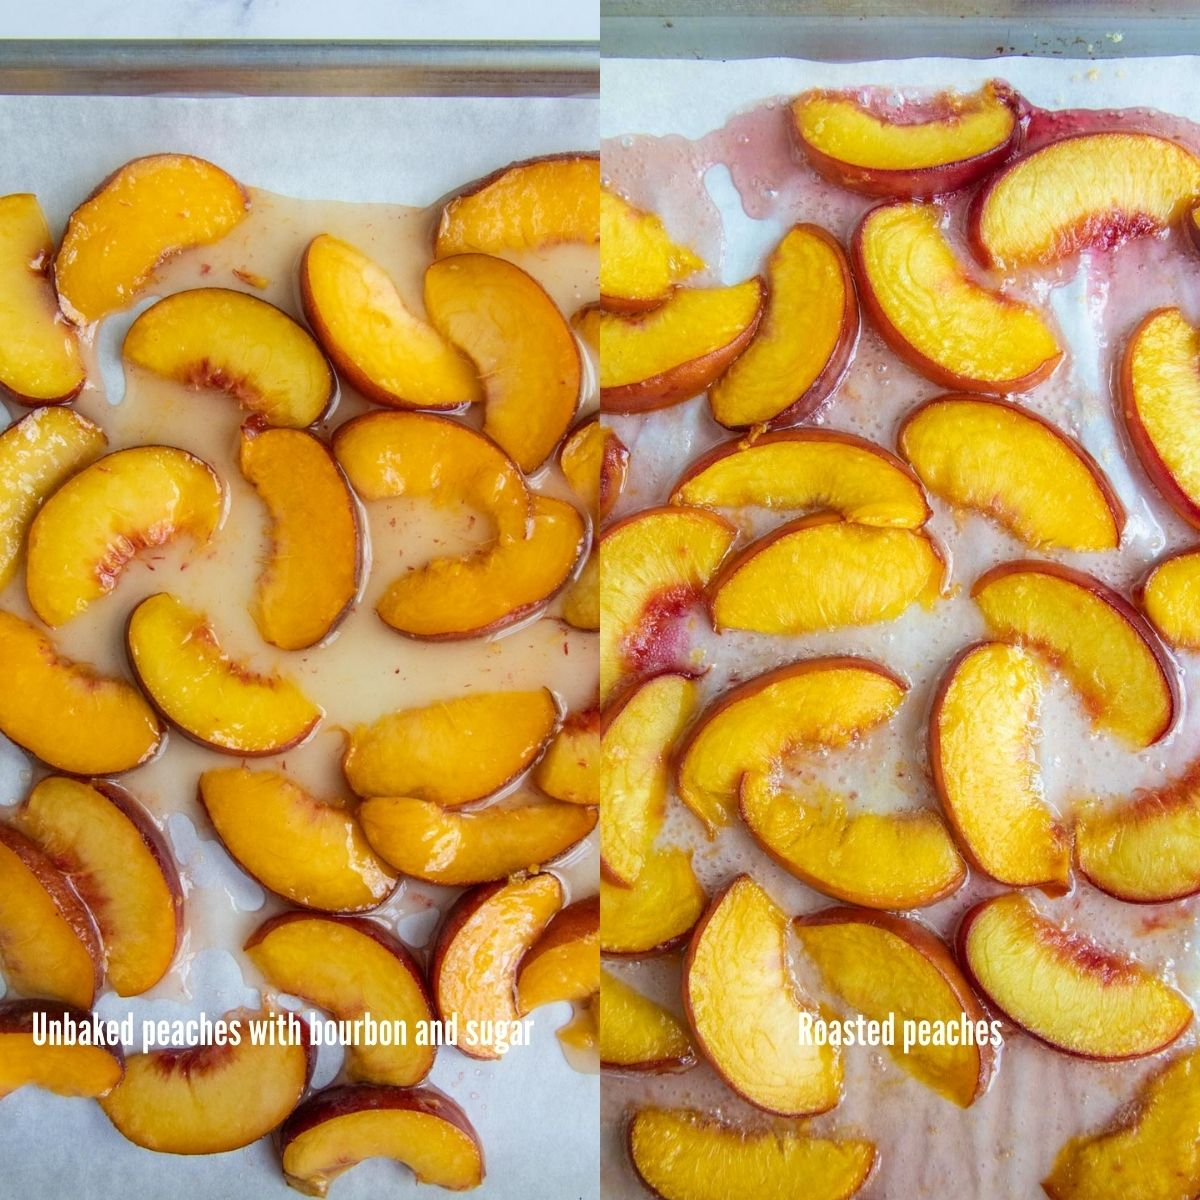 Side by side picture of fresh peaches and roasted peaches